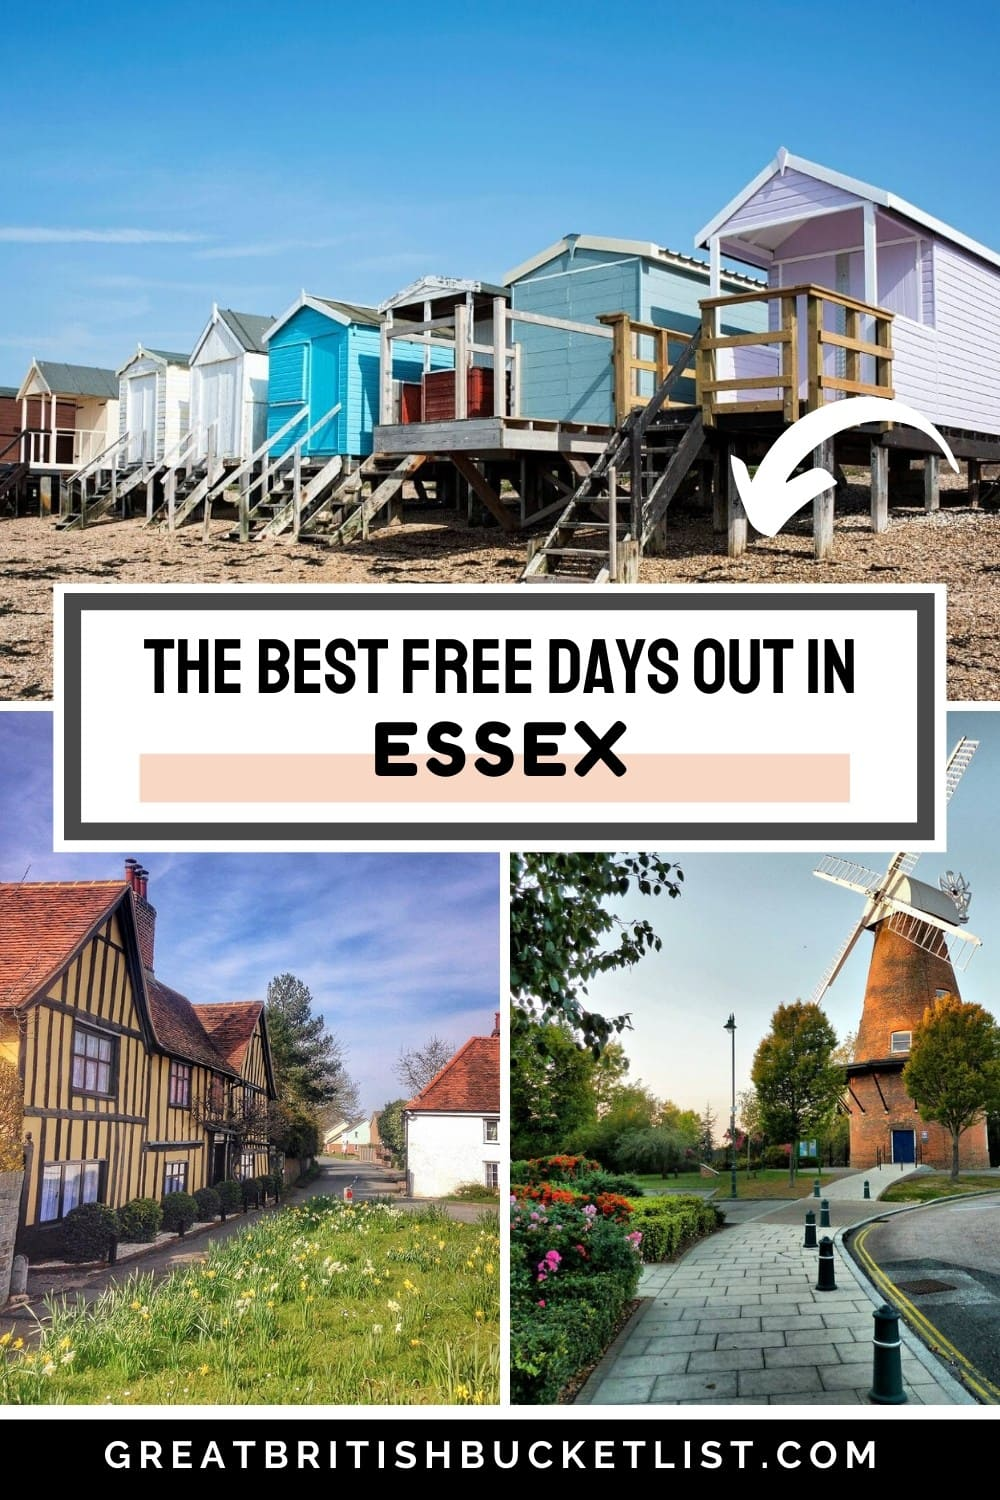 12 of the BEST Free Days Out in Essex, England